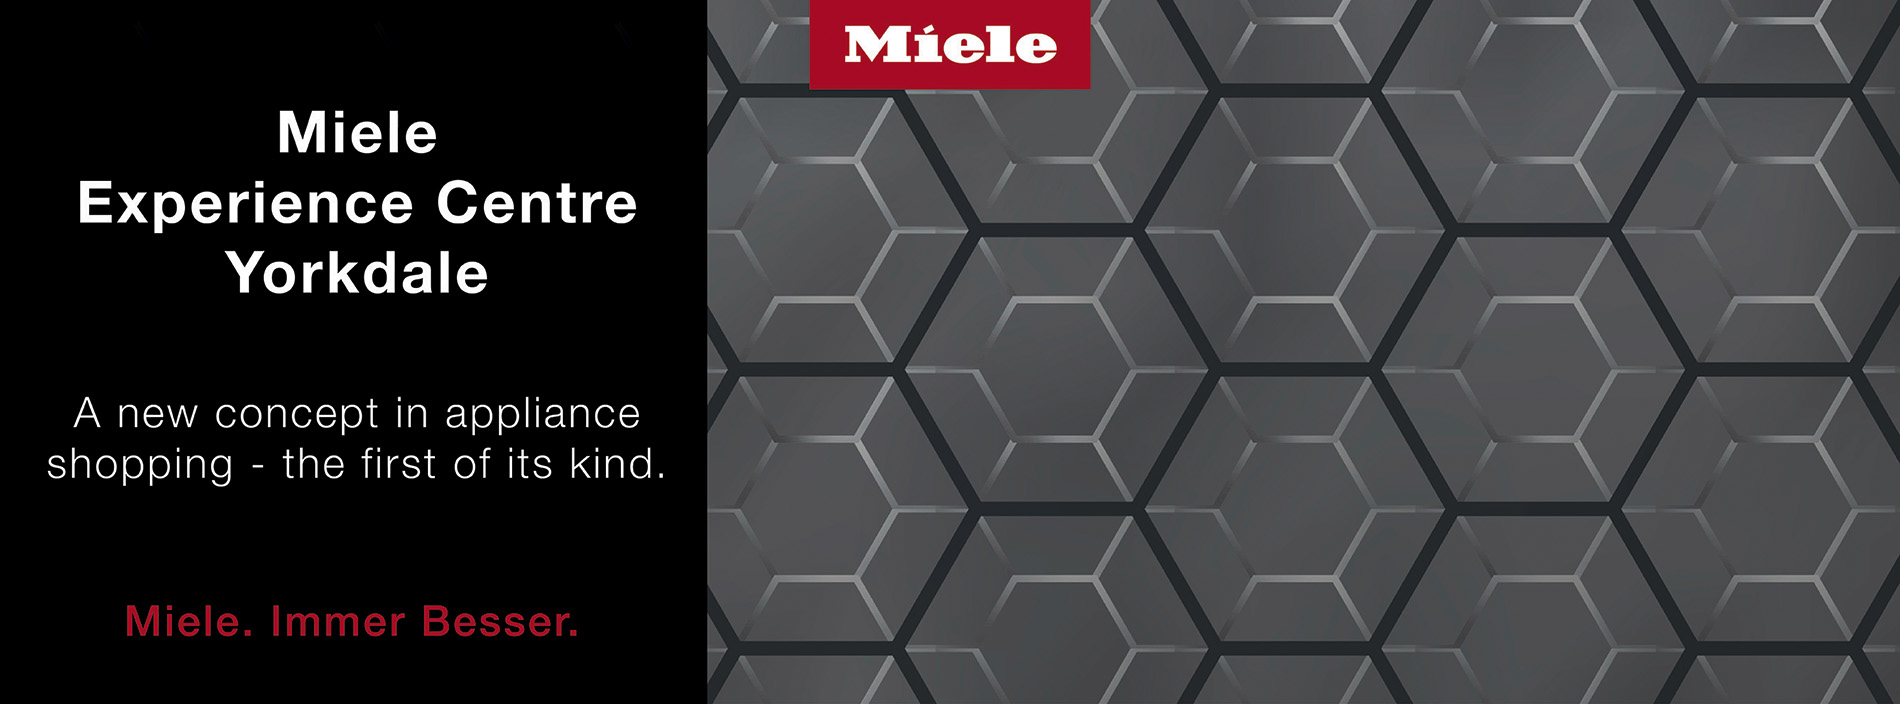 Miele hero banner that says Miele Experience Center Yorkdale, a new concept in appliance shopping.